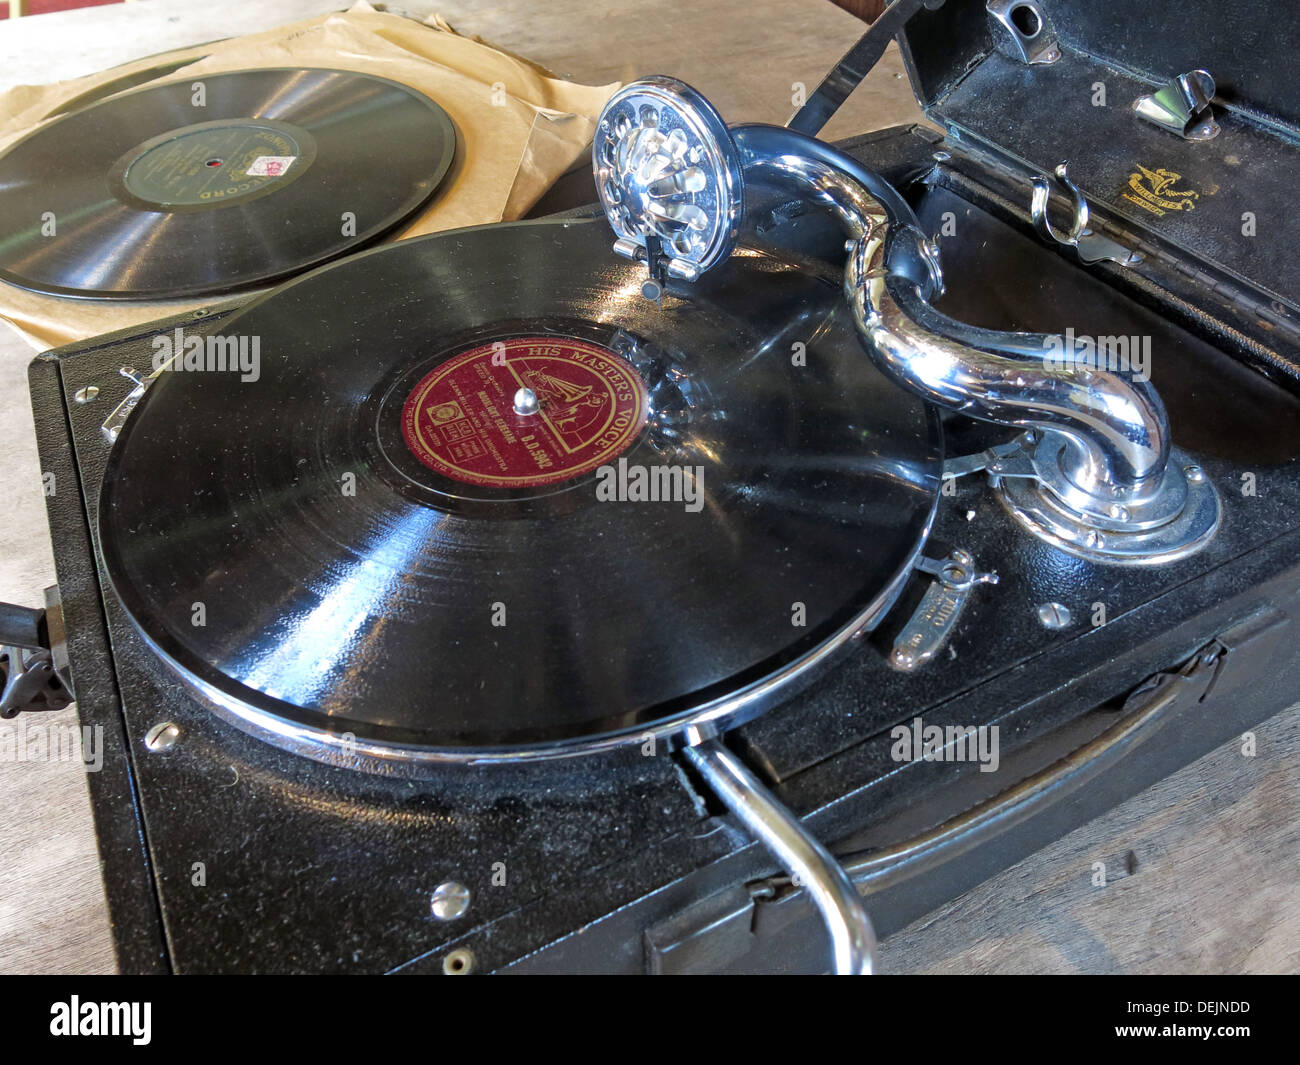 recording,RPM,78RPM,Vinyl,record,sold,by,willmotts,Wilmotts,Norwich,black,box,needle,HMV,his,masters,voice,label,red,hismastersvoice,Moonlight,Serenade,song,Glen,Miller,and,his,orchestra,speed,of,rotation,phono,phonograph,portable,audio,recording,format,Thomas,Edison,disc,disk,gotonysmith,gramaphone,gramofone,gramafone,English,England,UK,GB,great,Britain,walkman,early,formats,discs,disks,discs,recorded,sound,windup,handle,wound,woundup,spiral,groove,drive,system,the,needle,and,stylus,Buy Pictures of,Buy Images Of